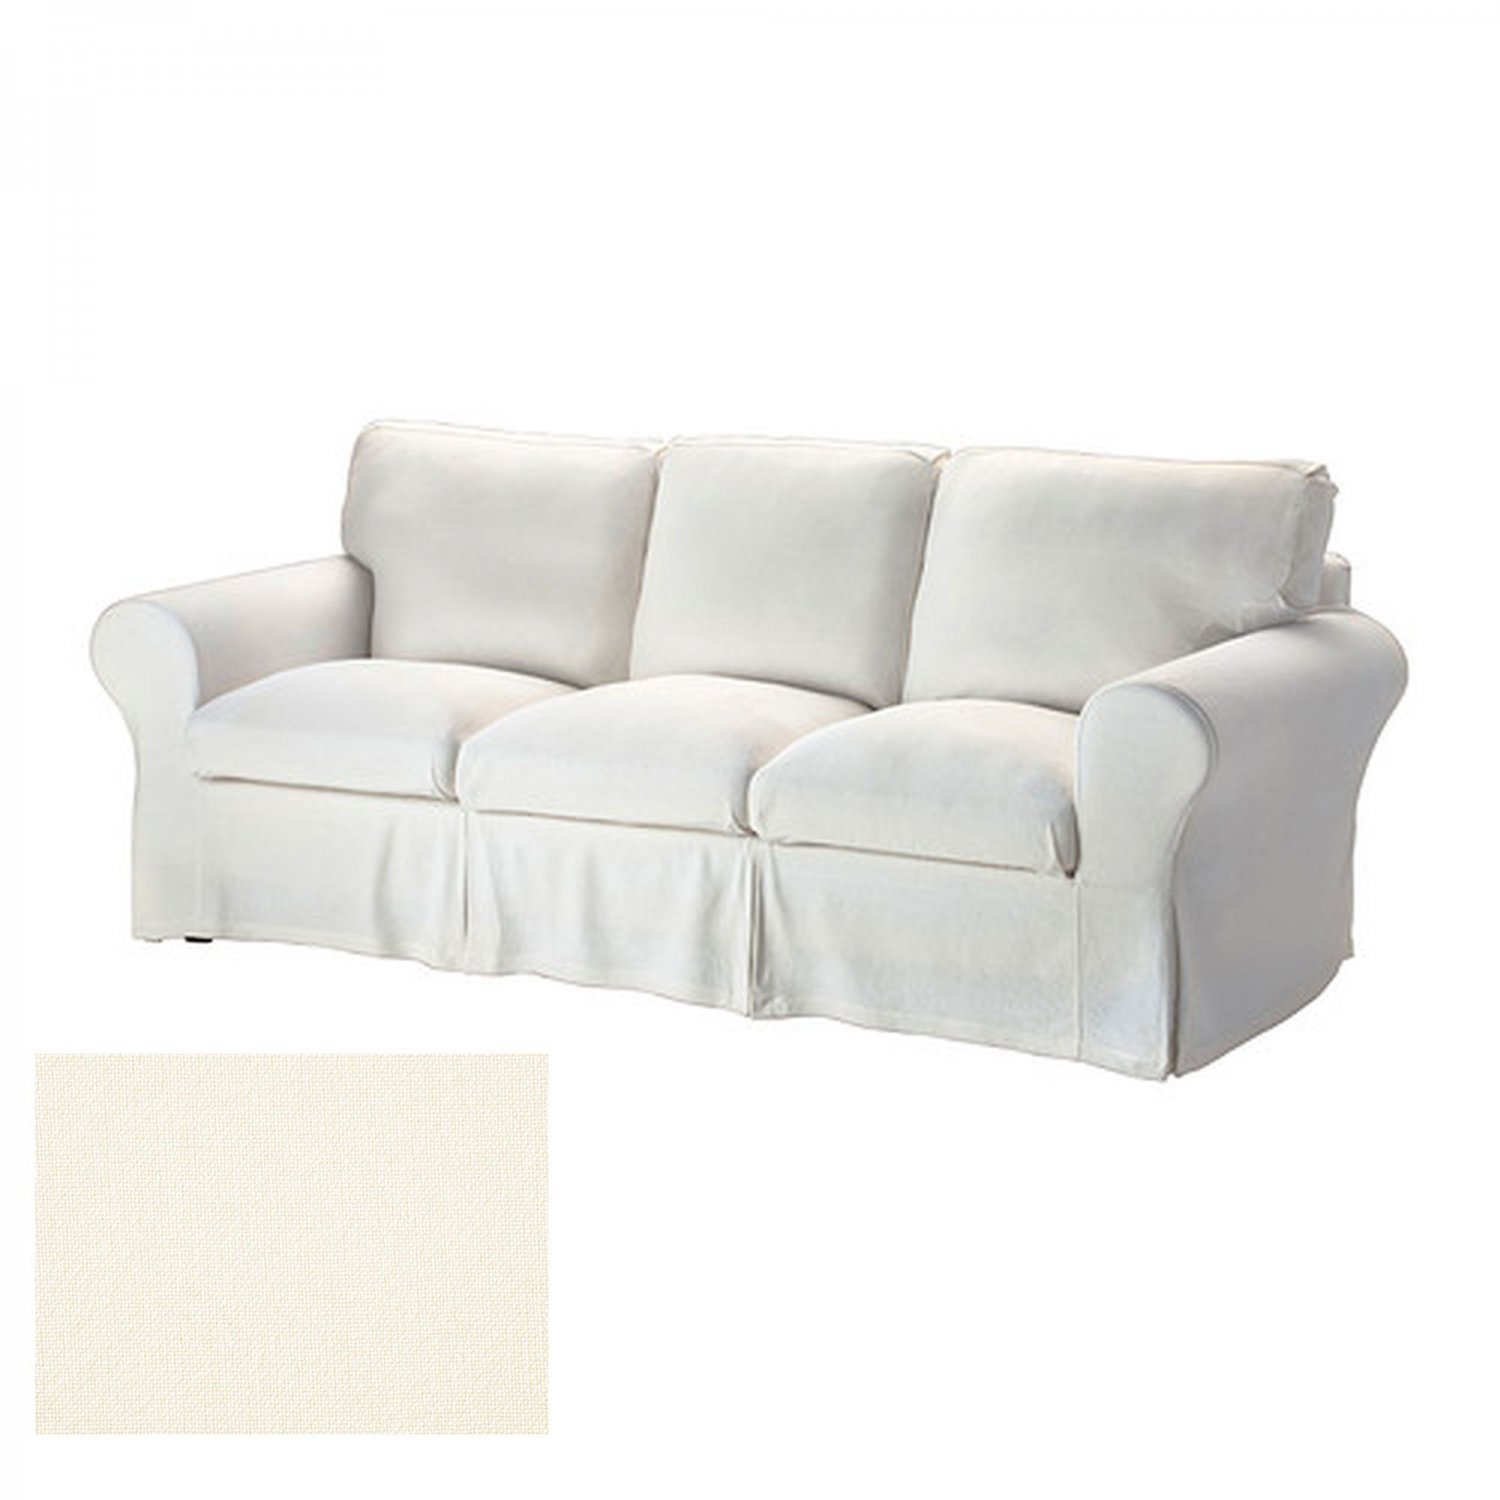 Ikea ektorp 3 seat sofa slipcover cover stenasa white off for 3 on a couch